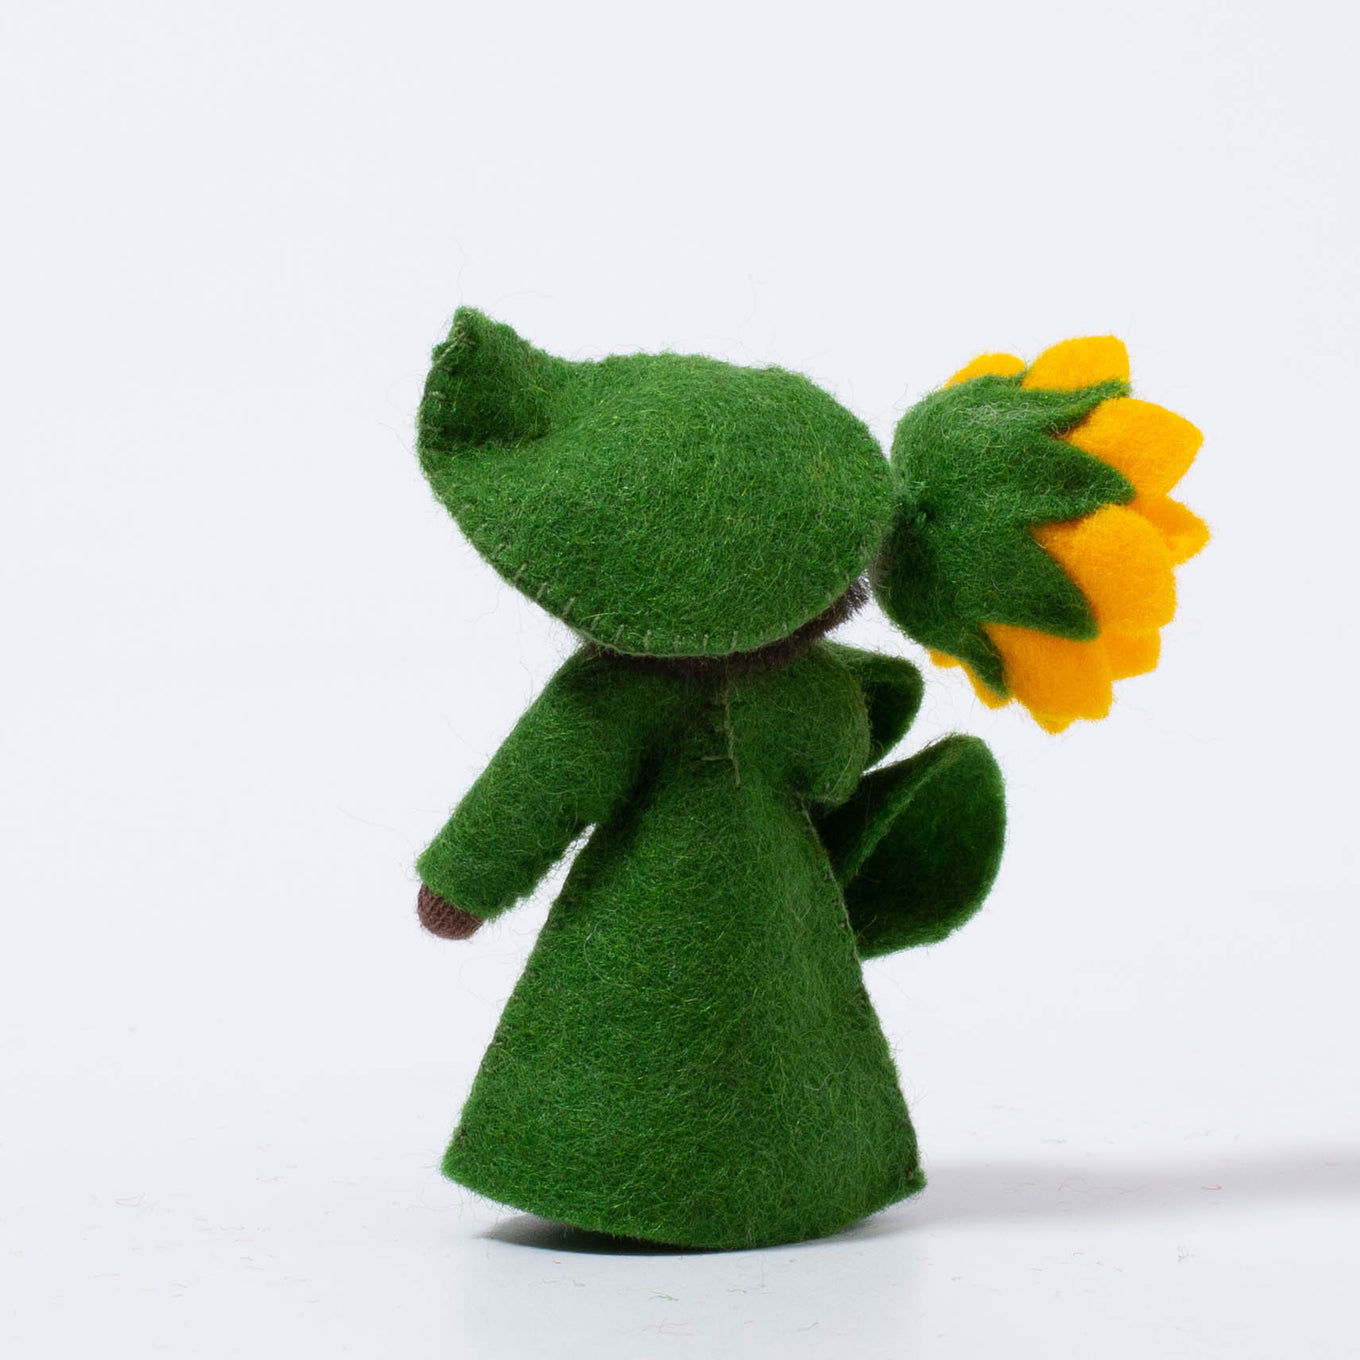 Felt Flower Fairy Sunflower in hand | Dark Skin Tone